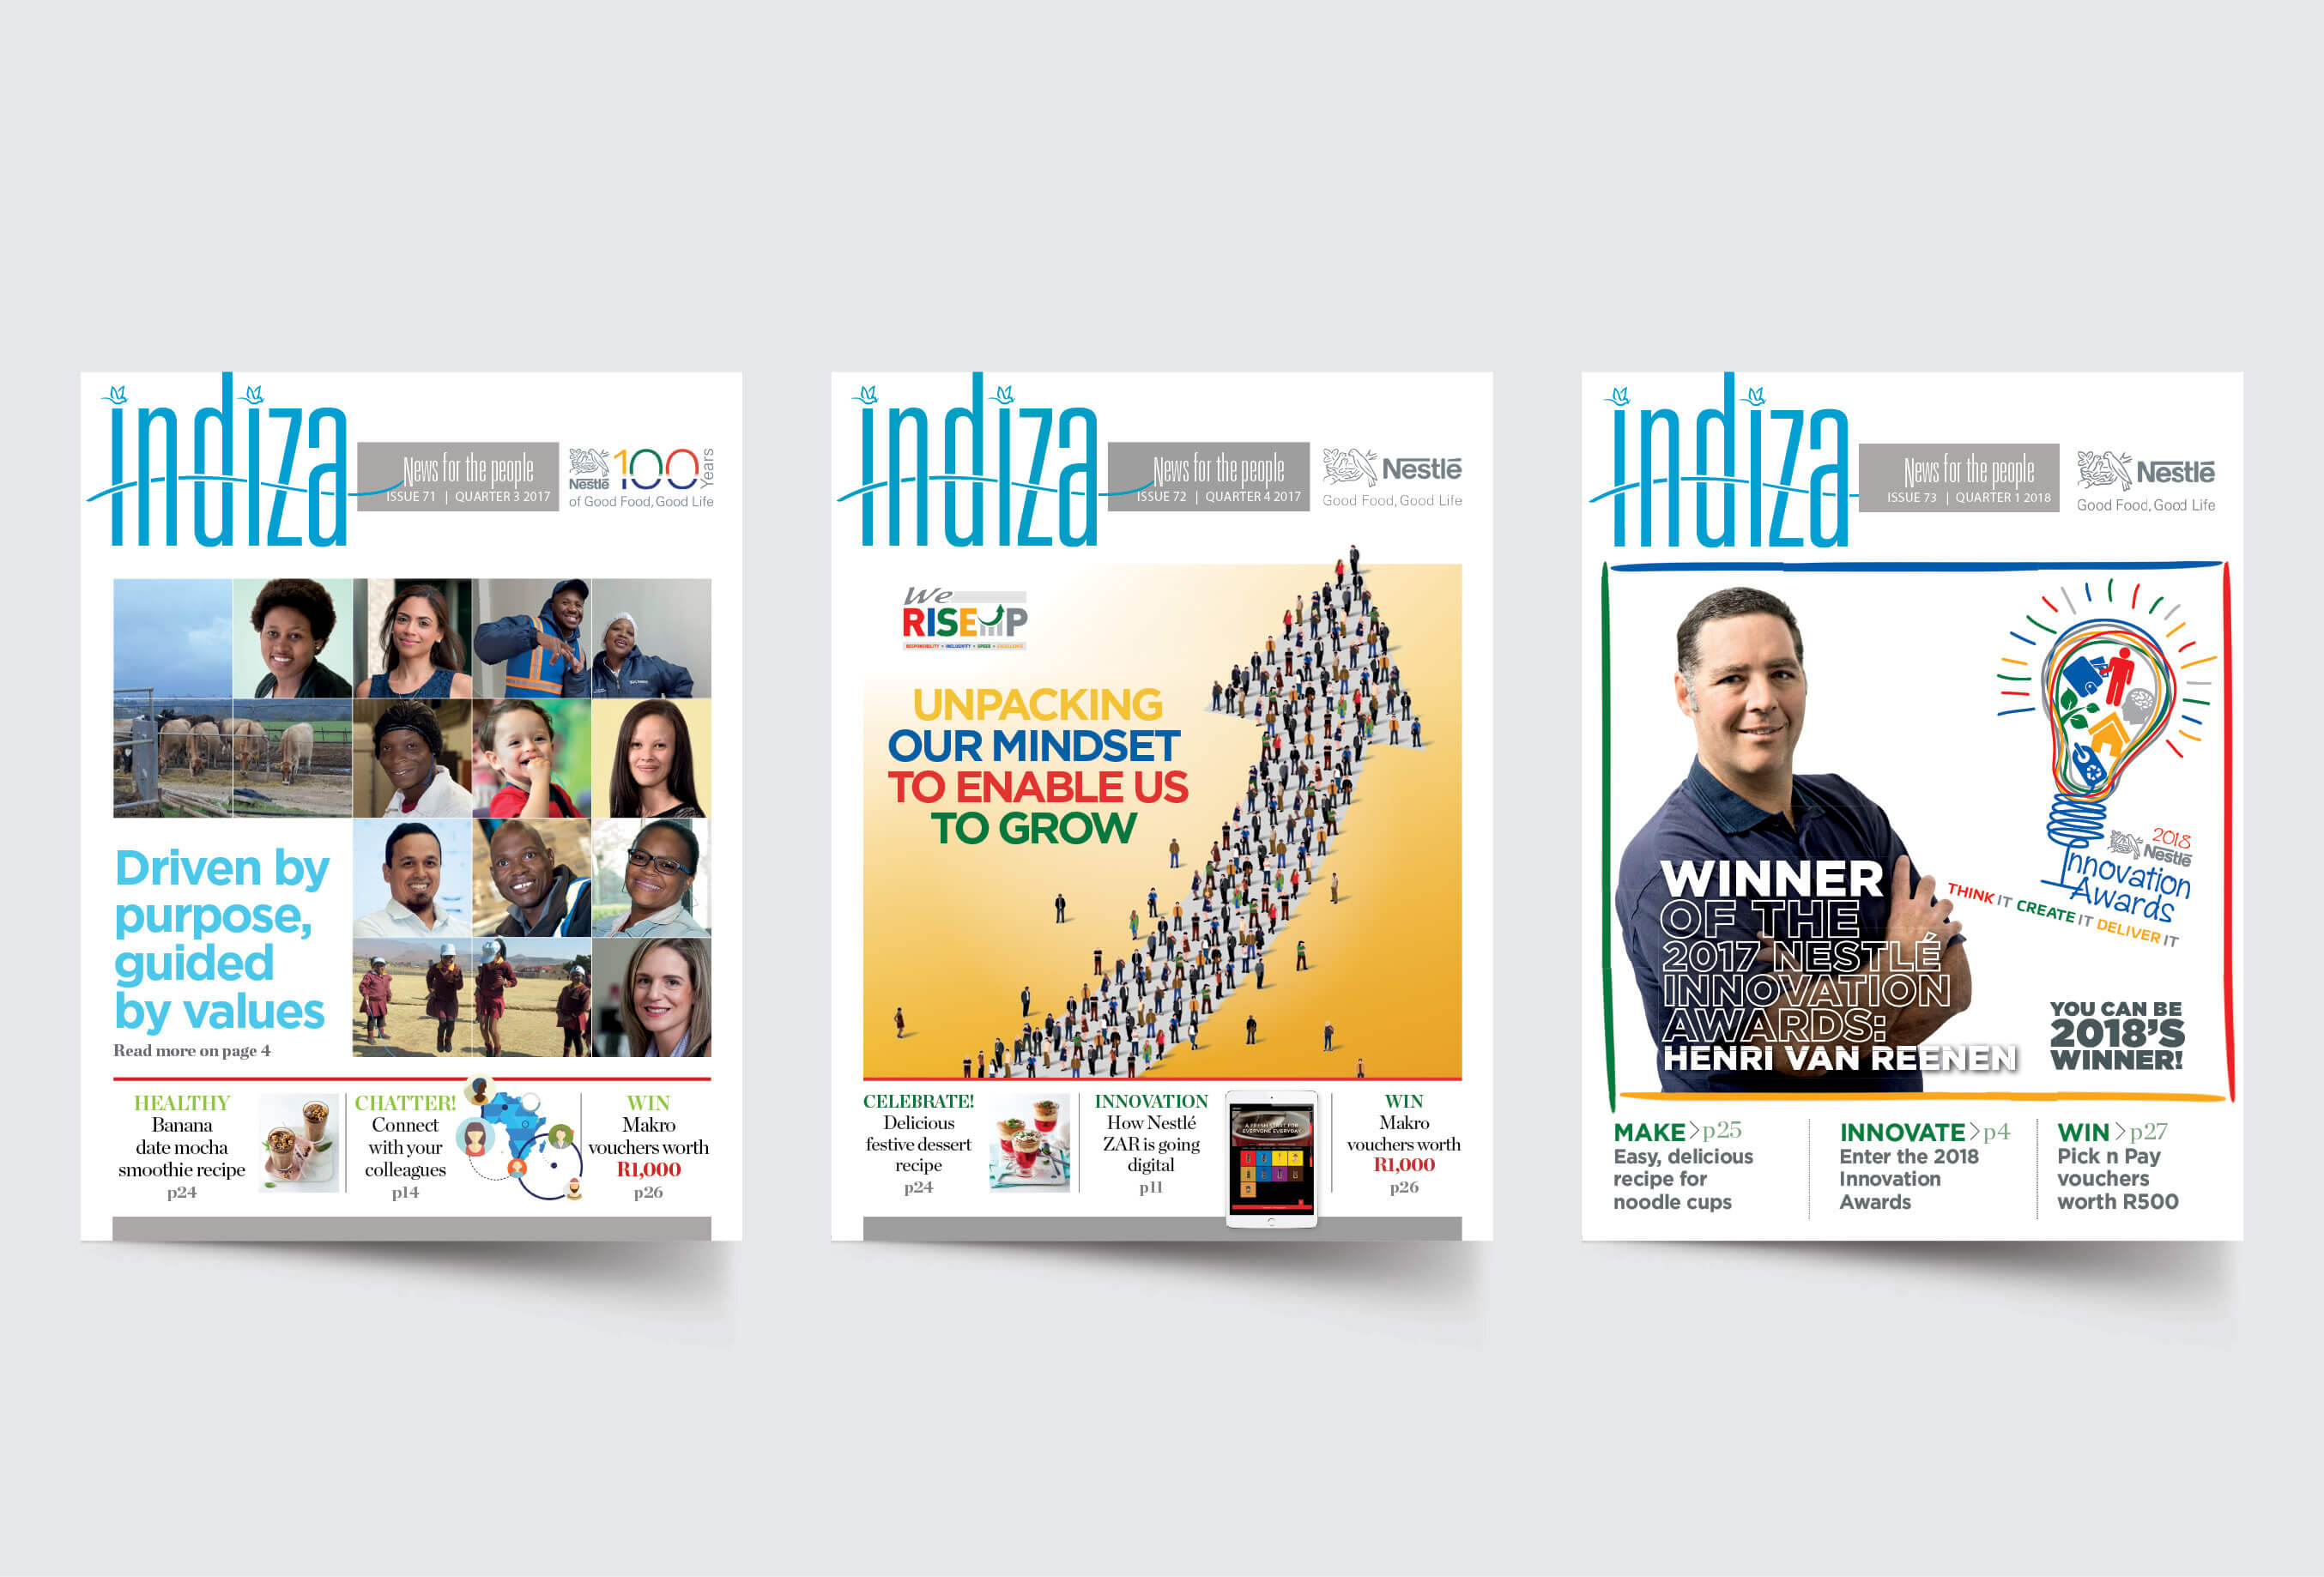 Indiza magazine wins 2018 SA Publications awards